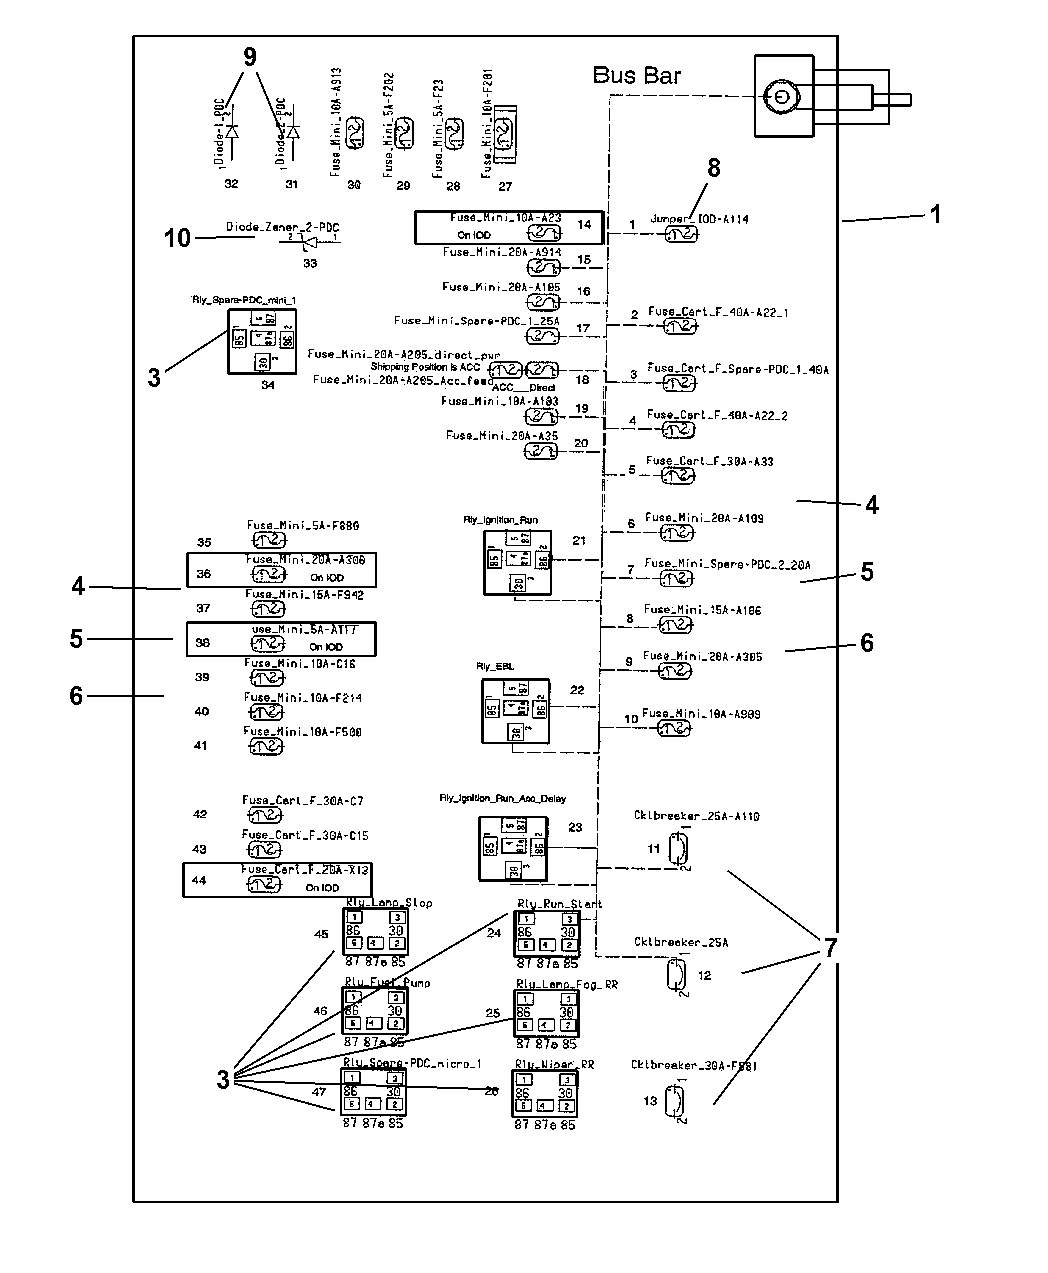 2006 dodge charger rt trunk fuse panel diagram | wiring ... 2012 dodge charger fuse box